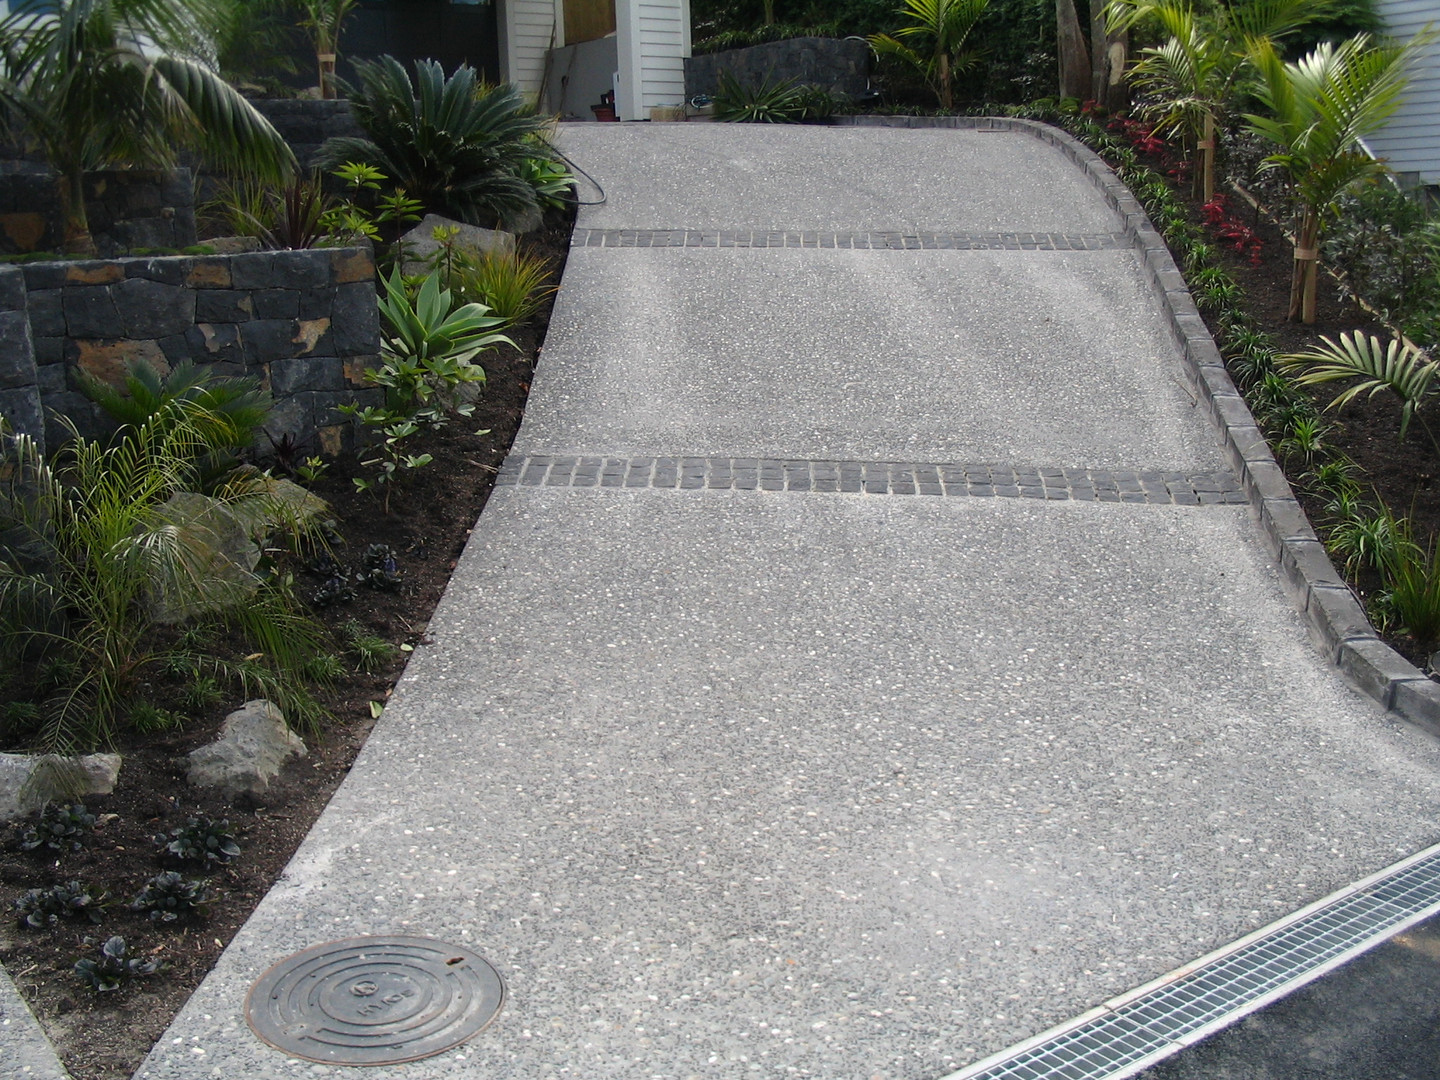 Loading Bay at Residential Home